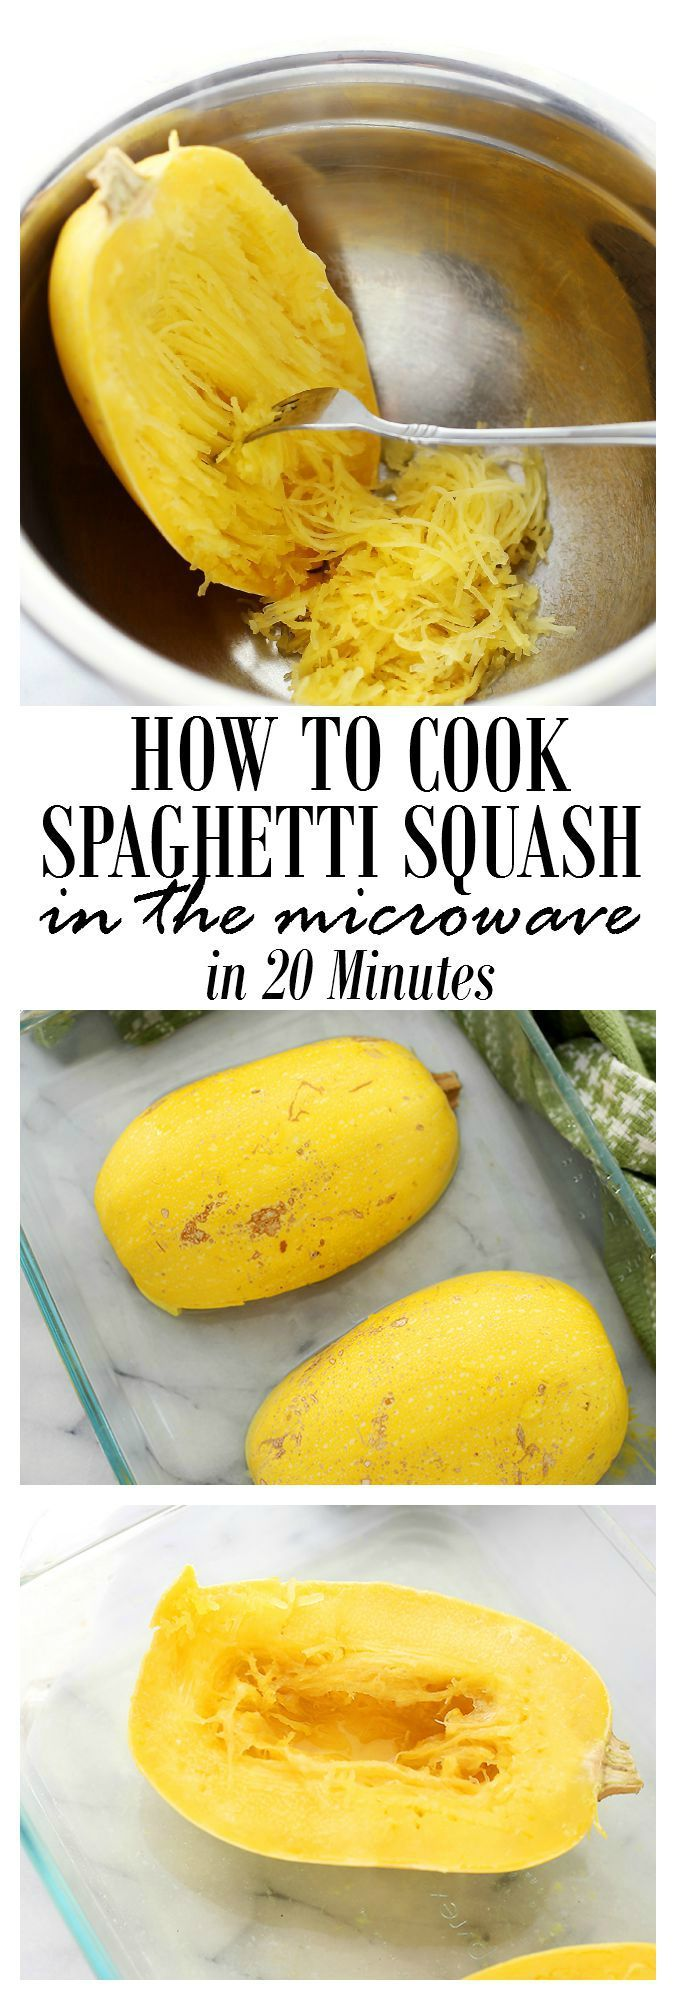 How To Cook Spaghetti Squash In The Microwave  Diethood  A